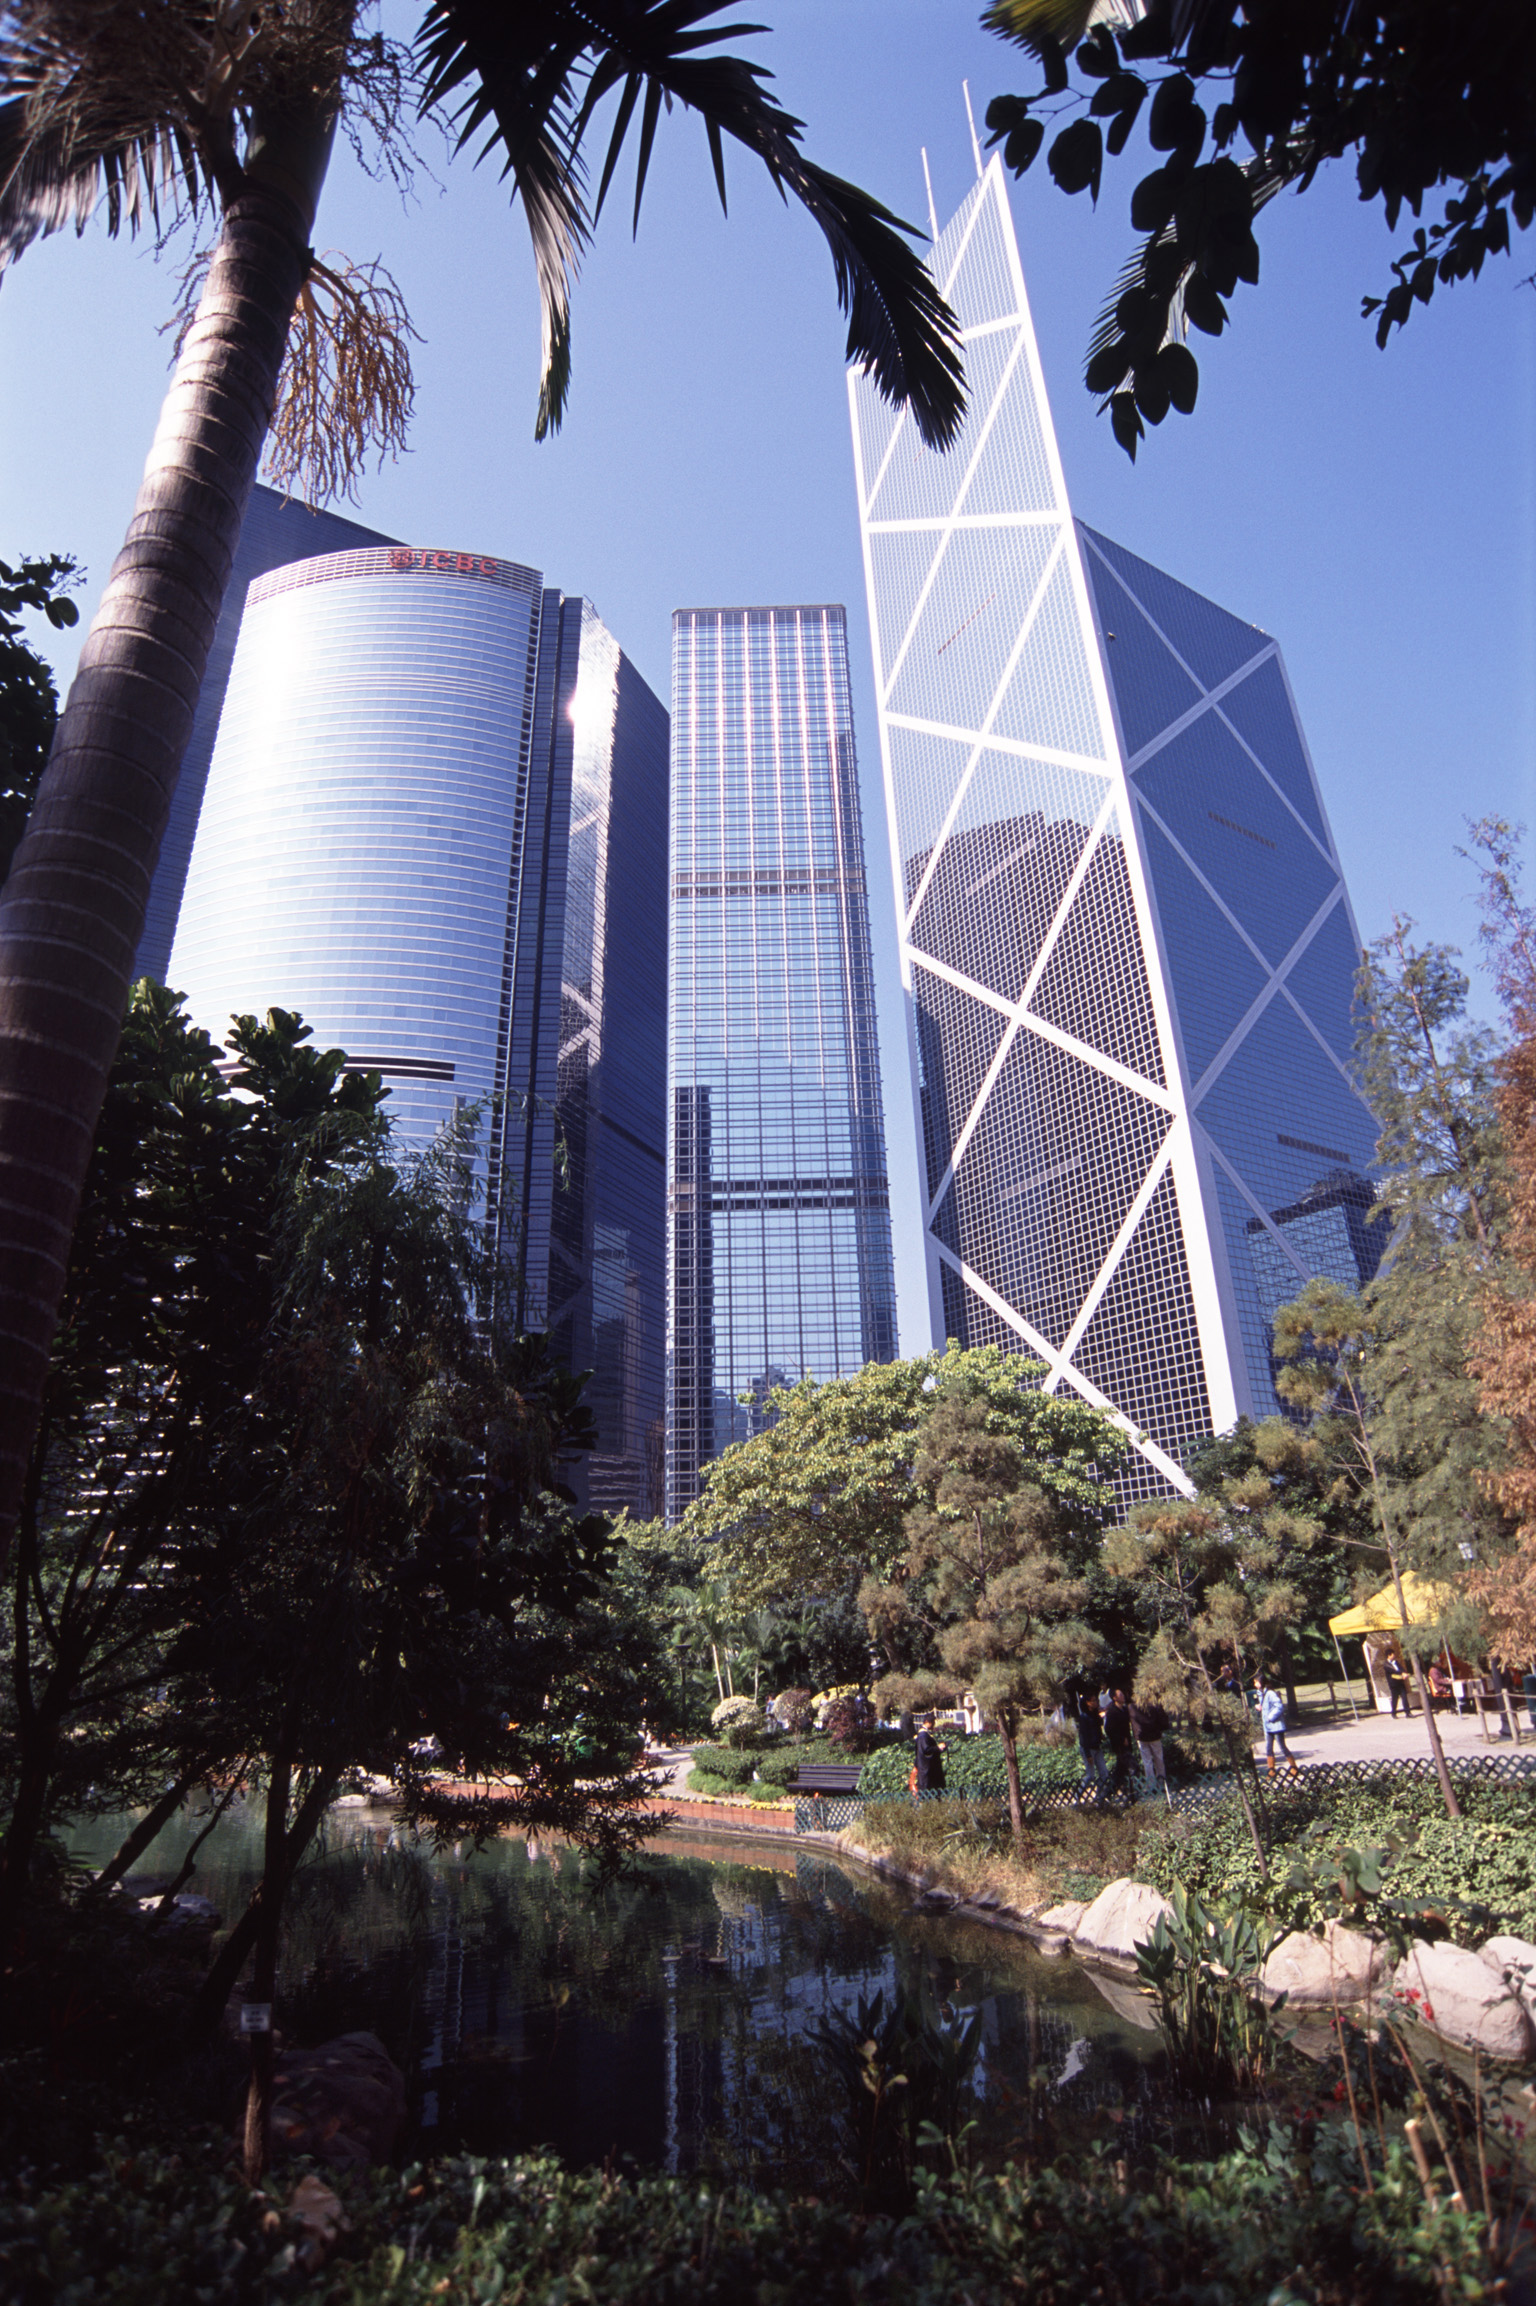 downtown hongkong, modern skyscrapers seen from the contrasting tranquility of an urban park